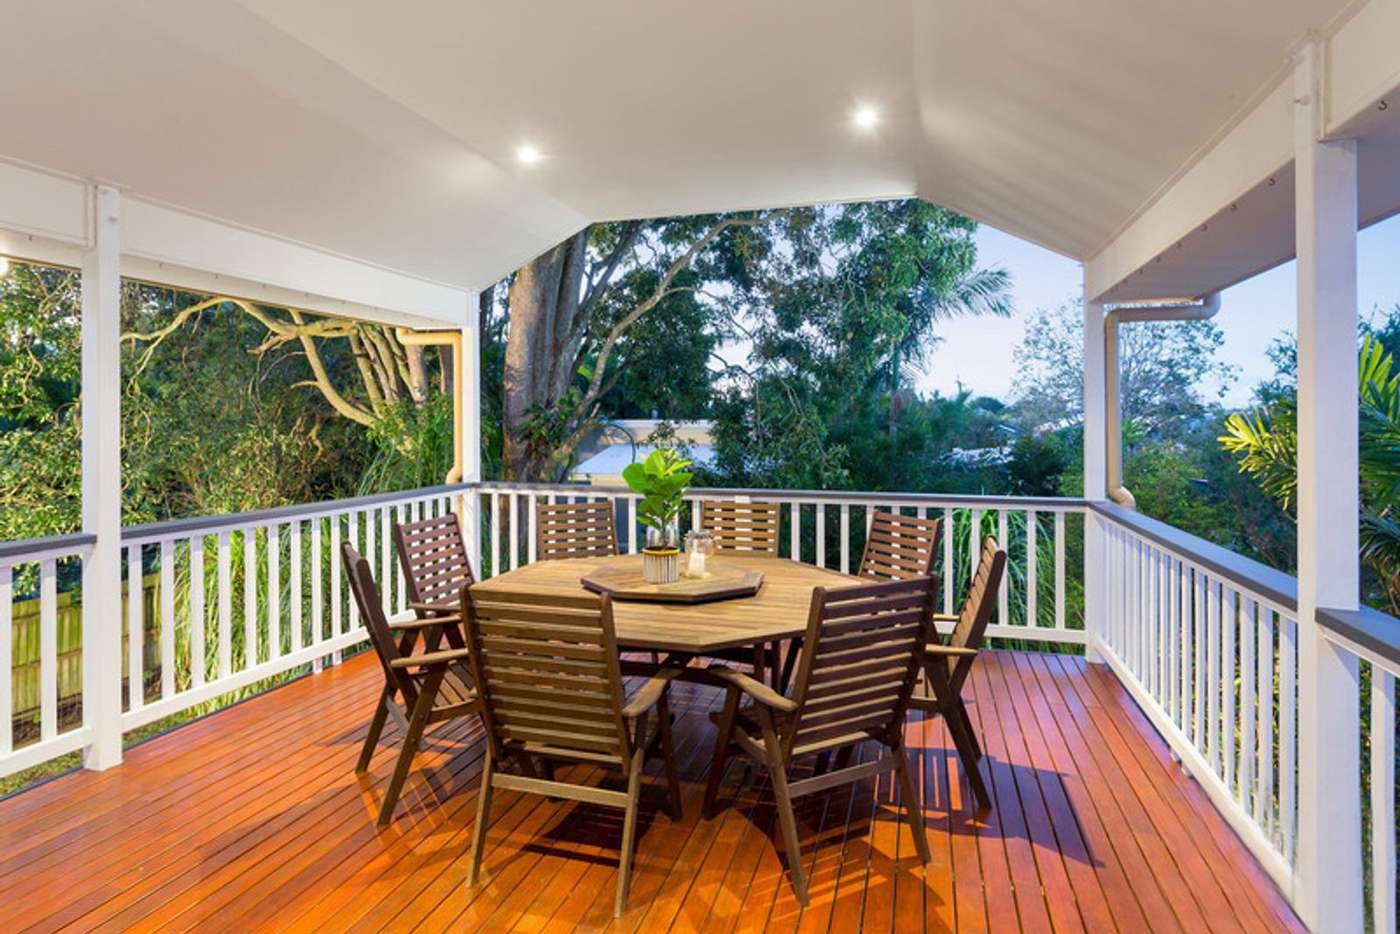 Main view of Homely house listing, 124 Central Avenue, Sherwood QLD 4075